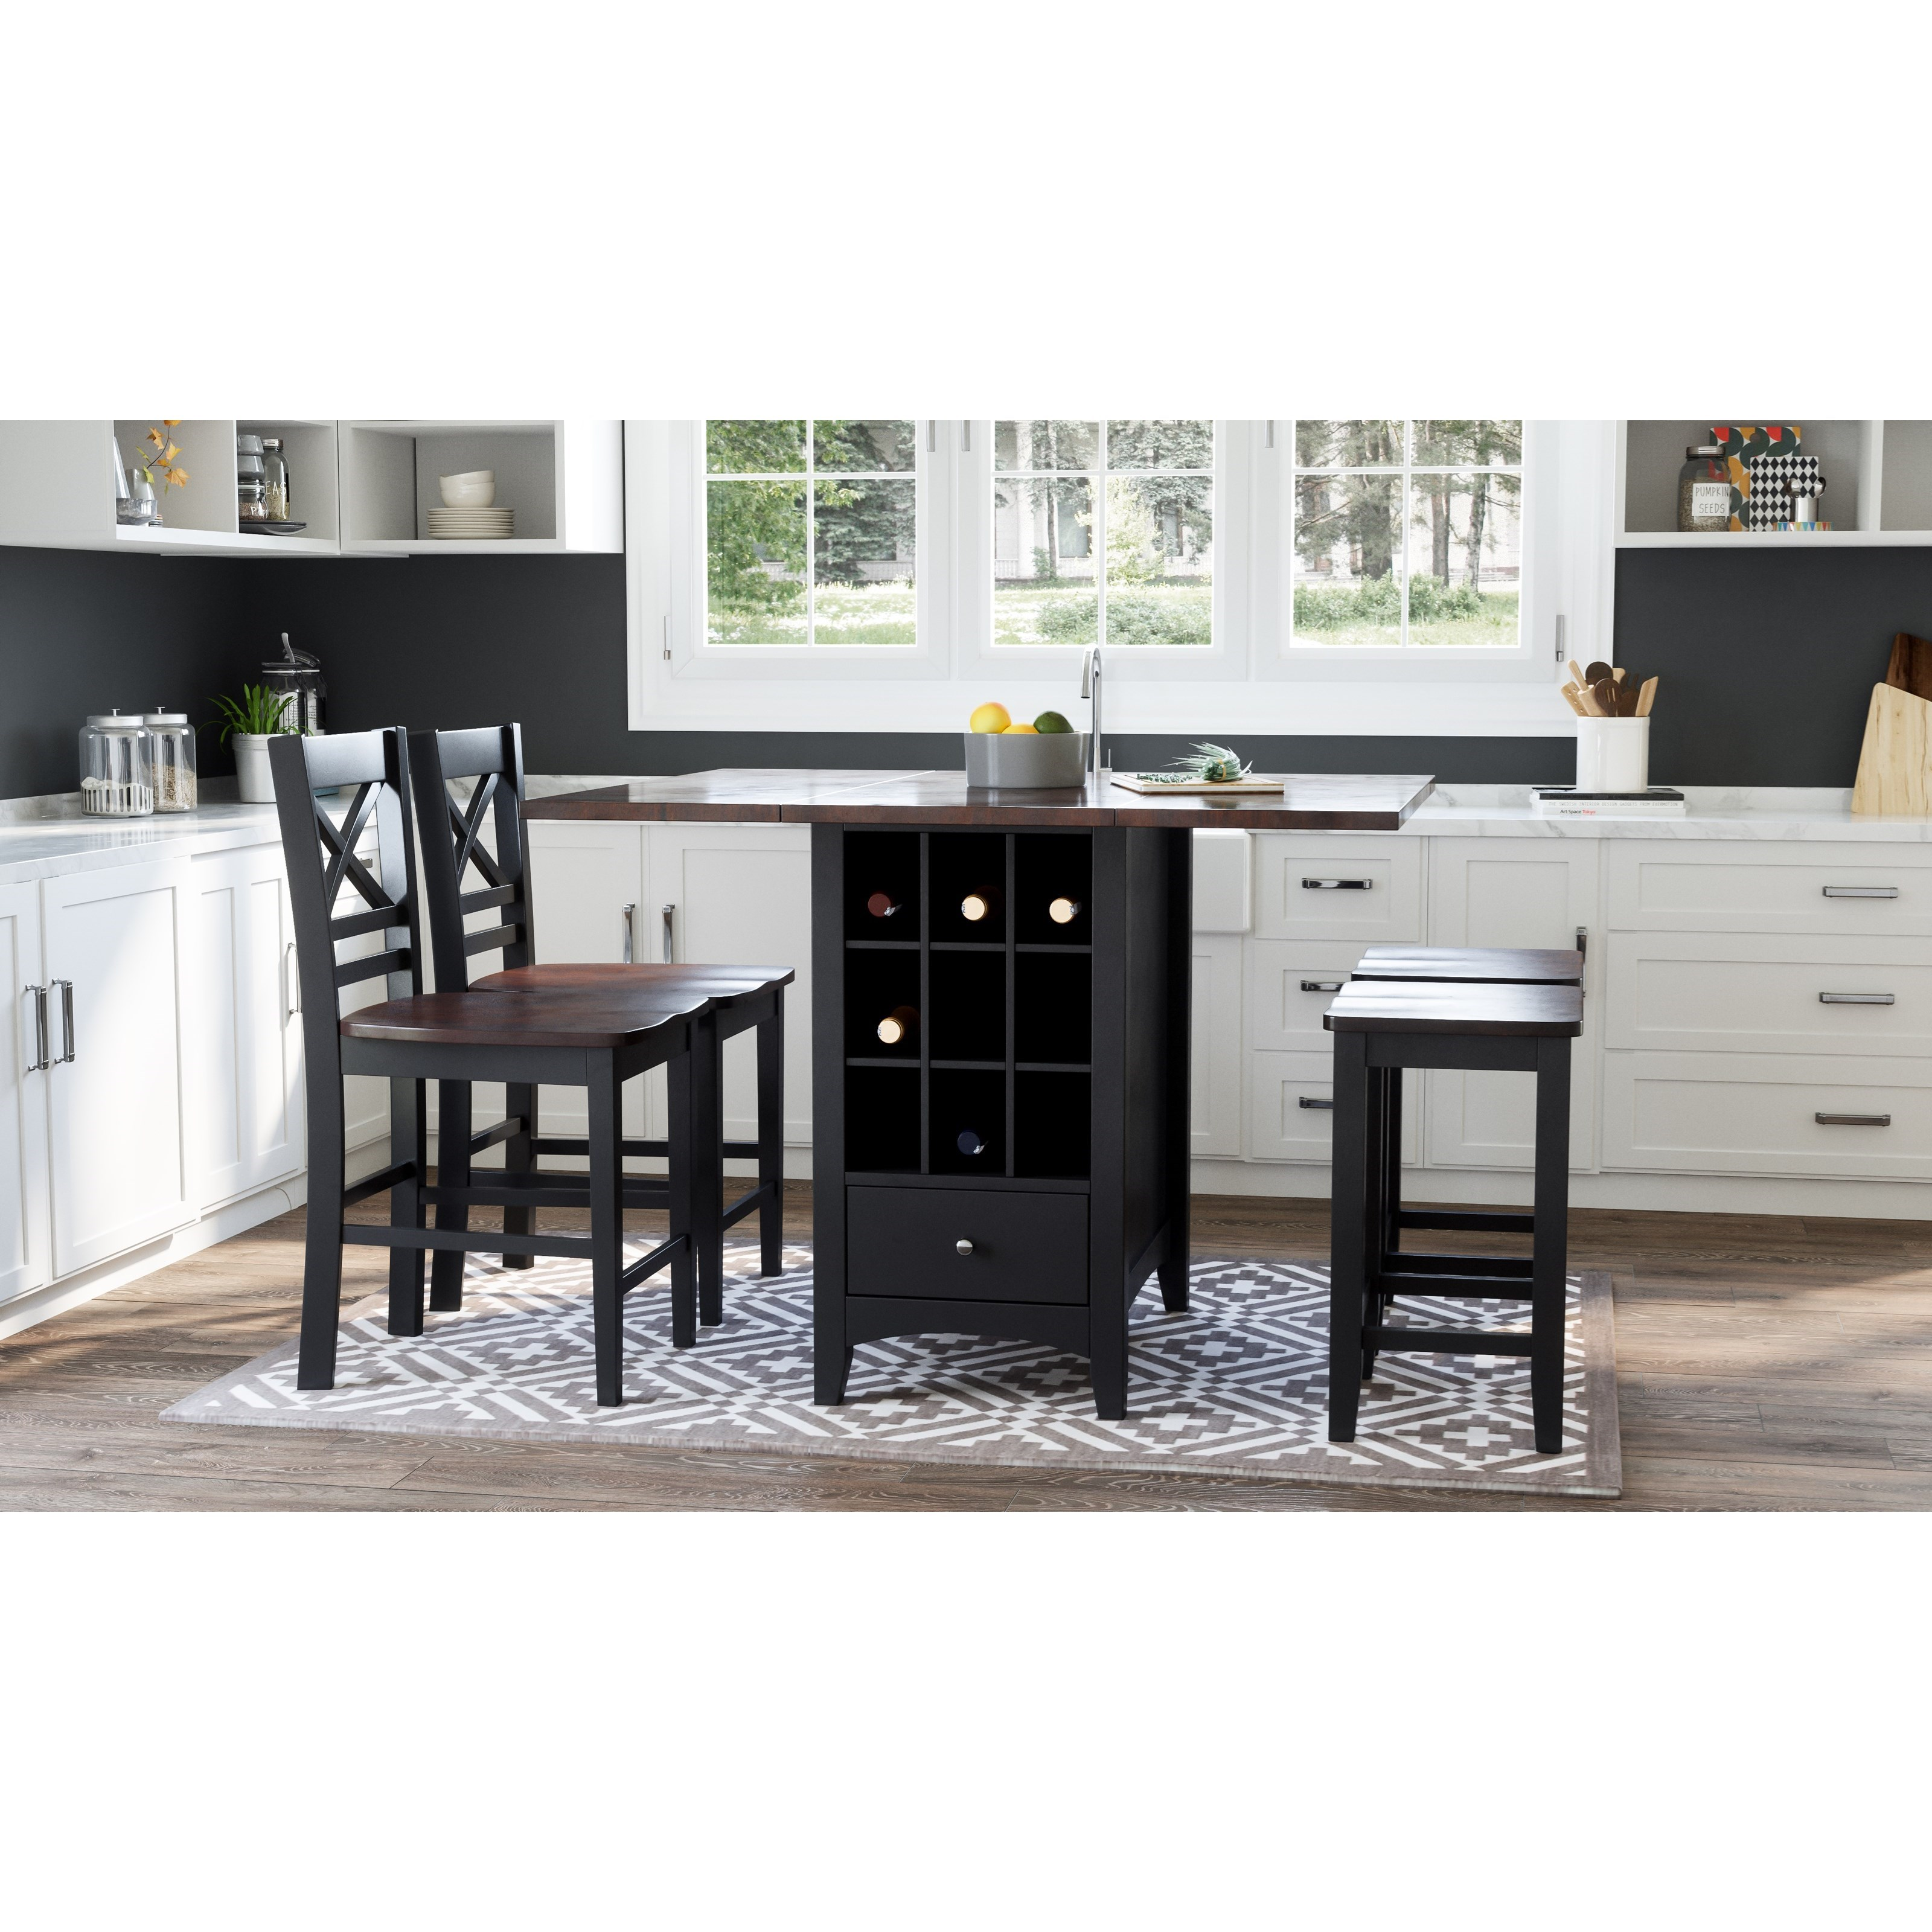 Asbury Park 5-Piece Counter Height Table and Stool Set by Jofran at Sparks HomeStore